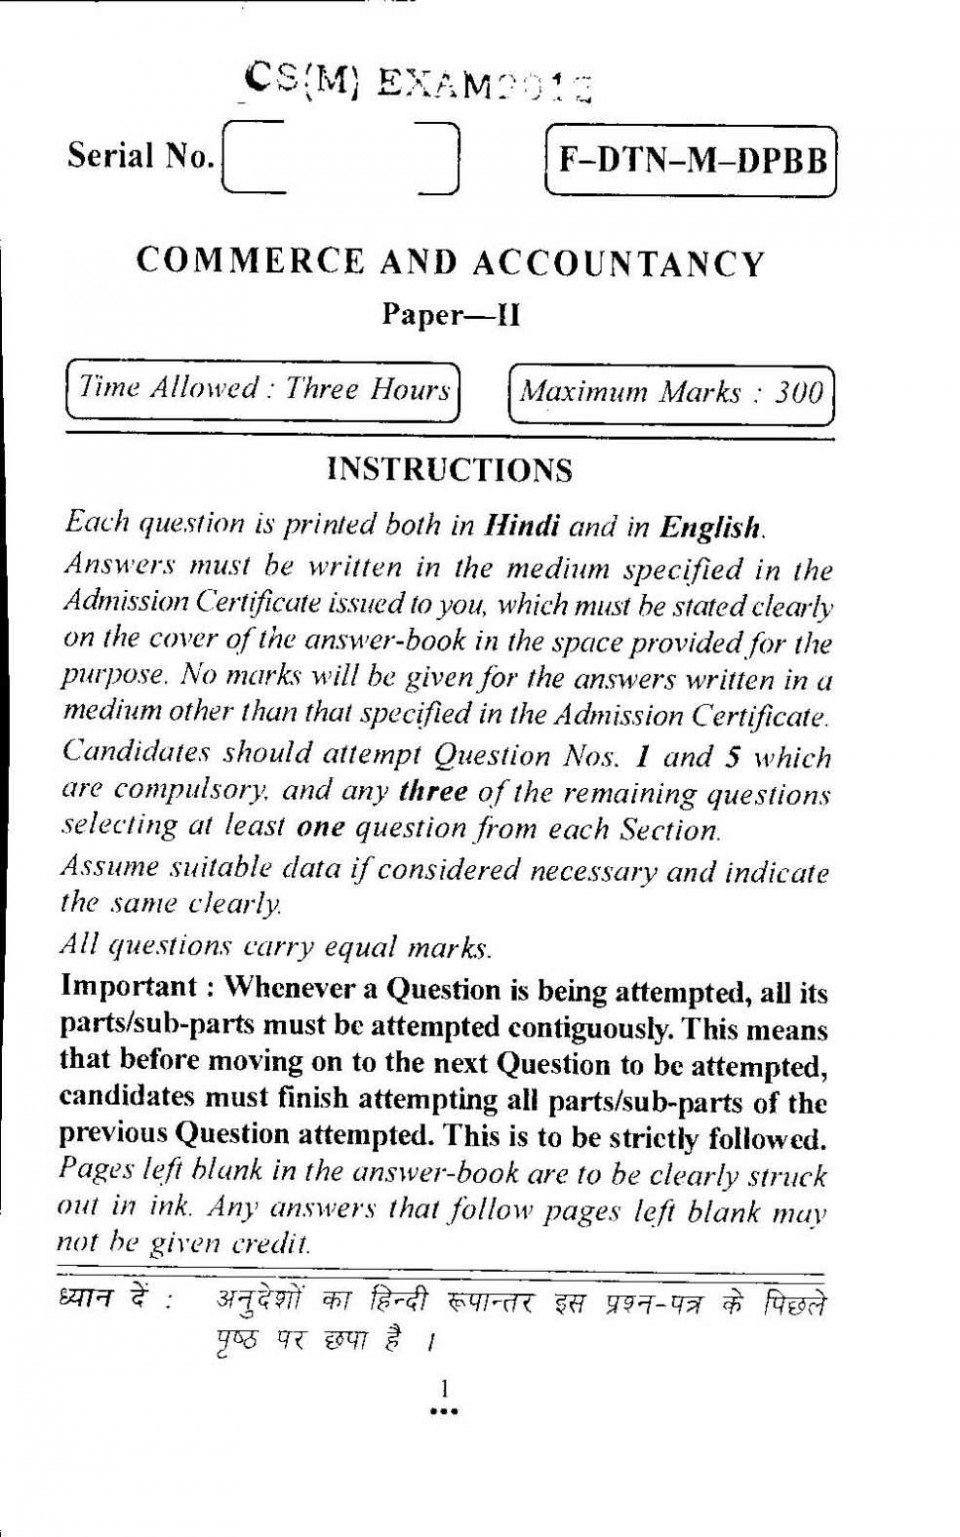 011 Civil Services Examination Commerce And Accountancy Paper Ii Previous Years Que Essay Example Marvelous Racism Racial Issues Topics Hook 960